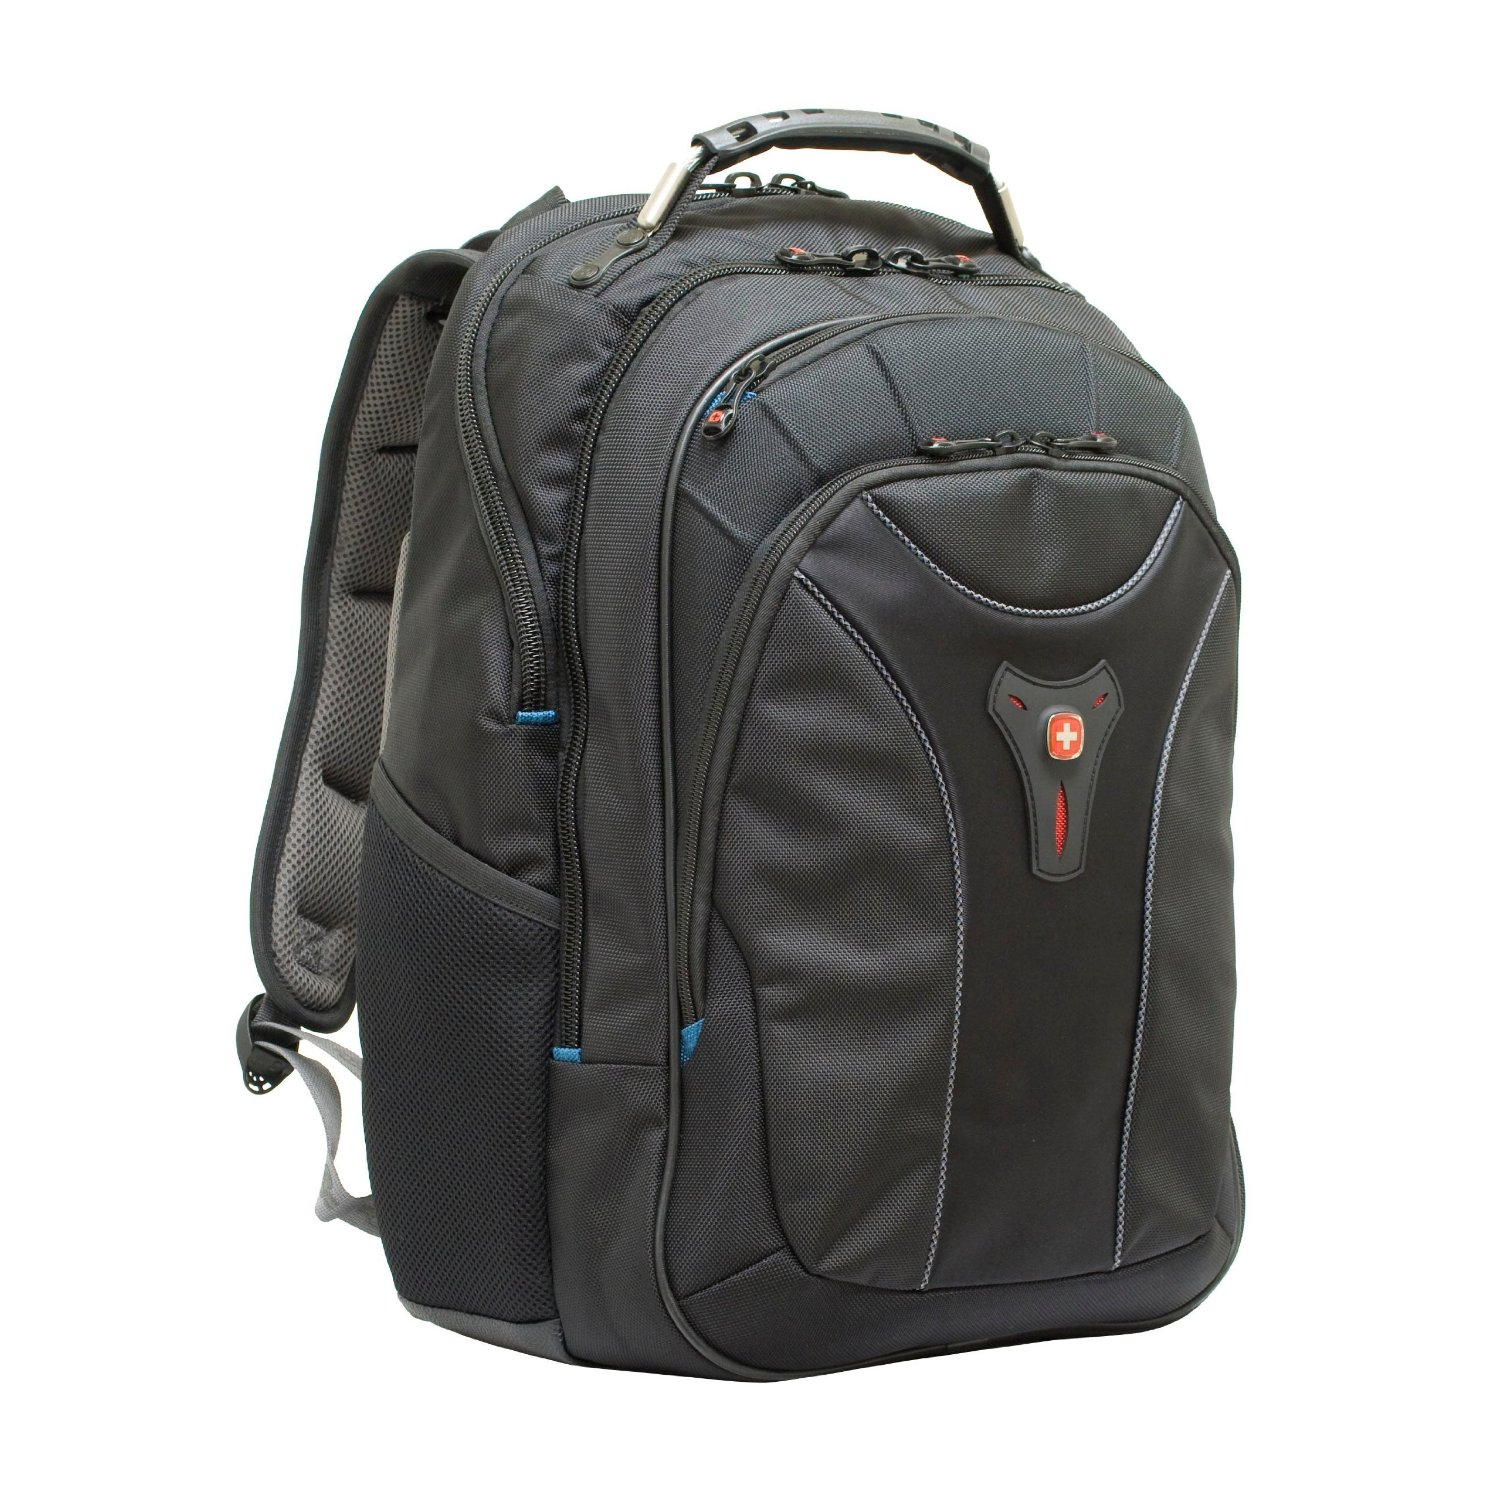 Swiss Gear Backpack Prices - Crazy Backpacks